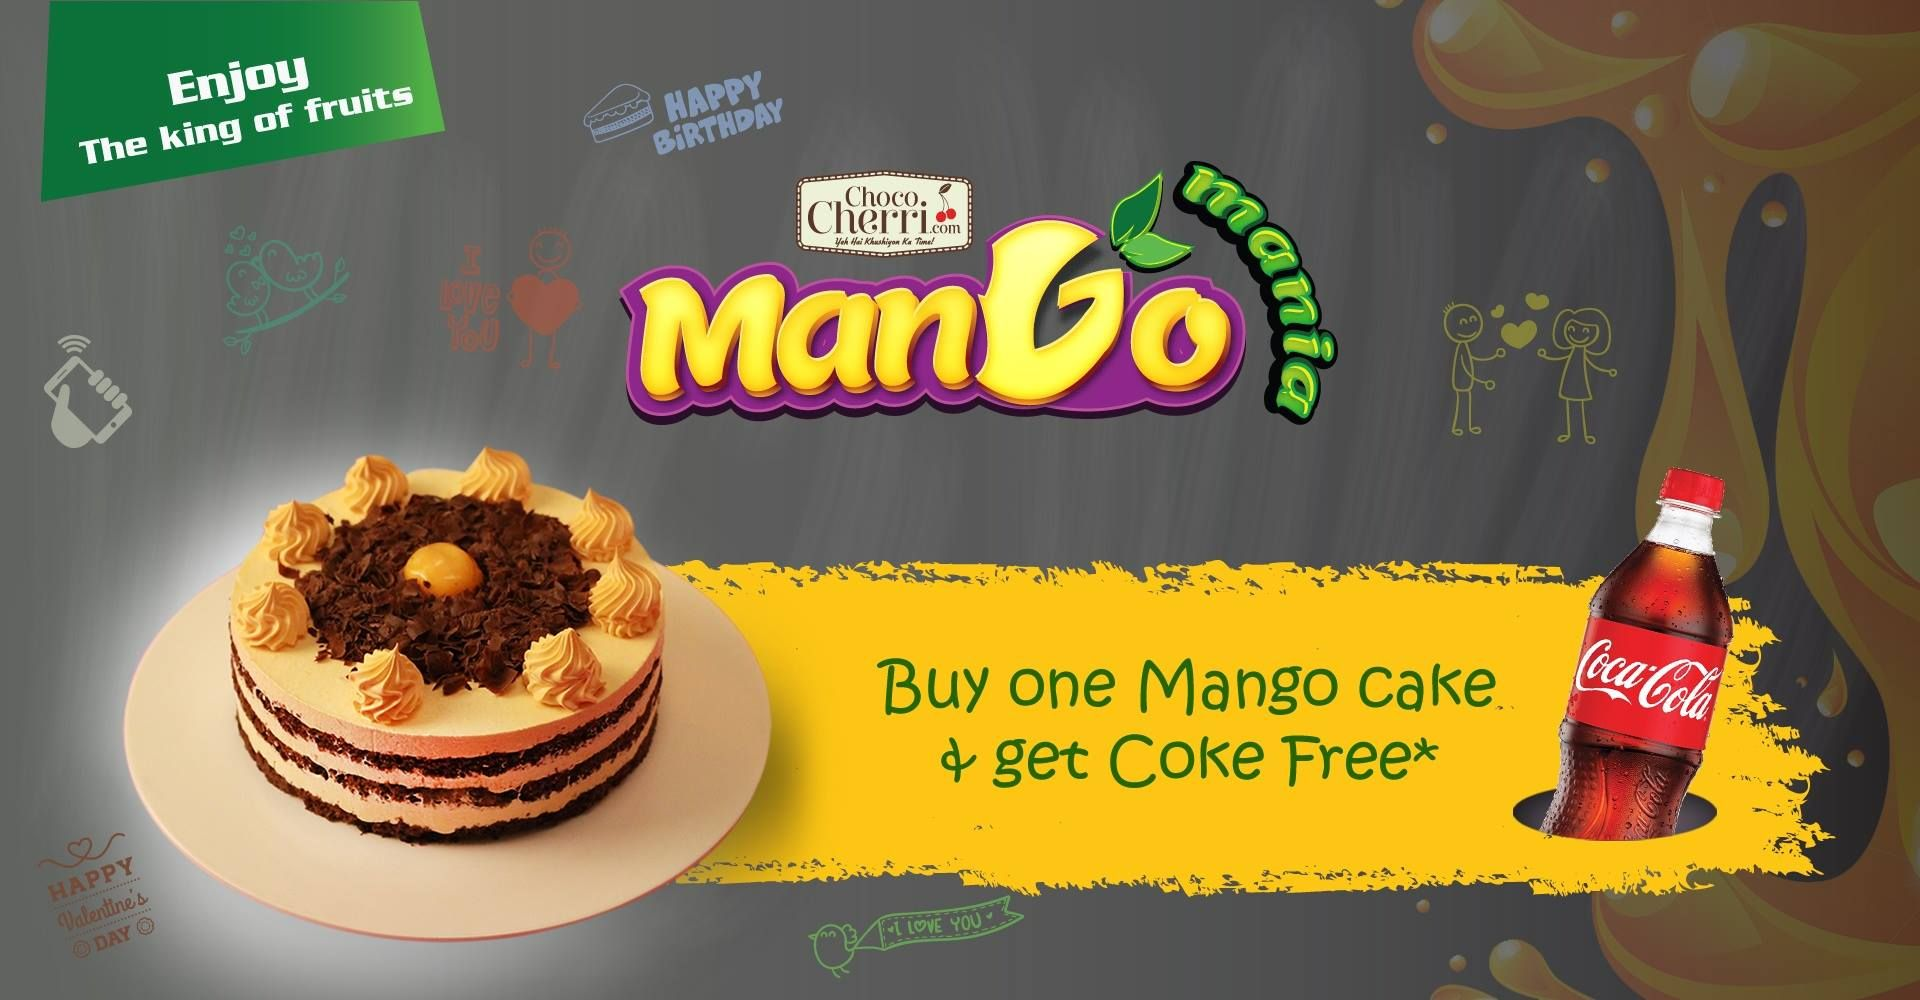 Does the succulent flavor of mango make you crave for more